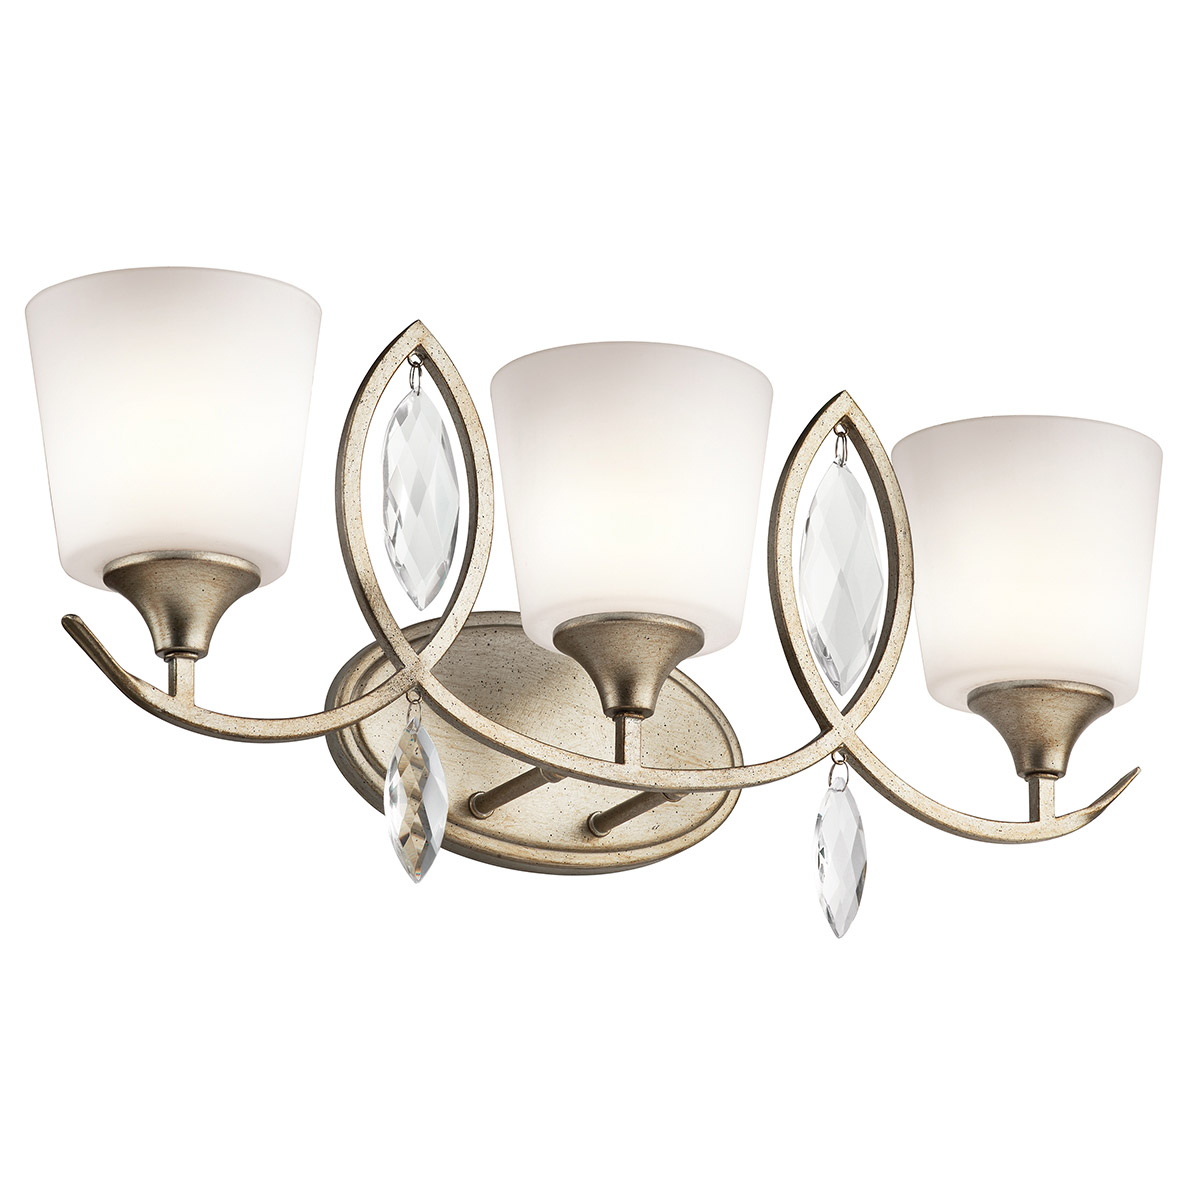 Vanity Lights Kichler : Kichler 45372SGD Casilda Bathroom Vanity Light